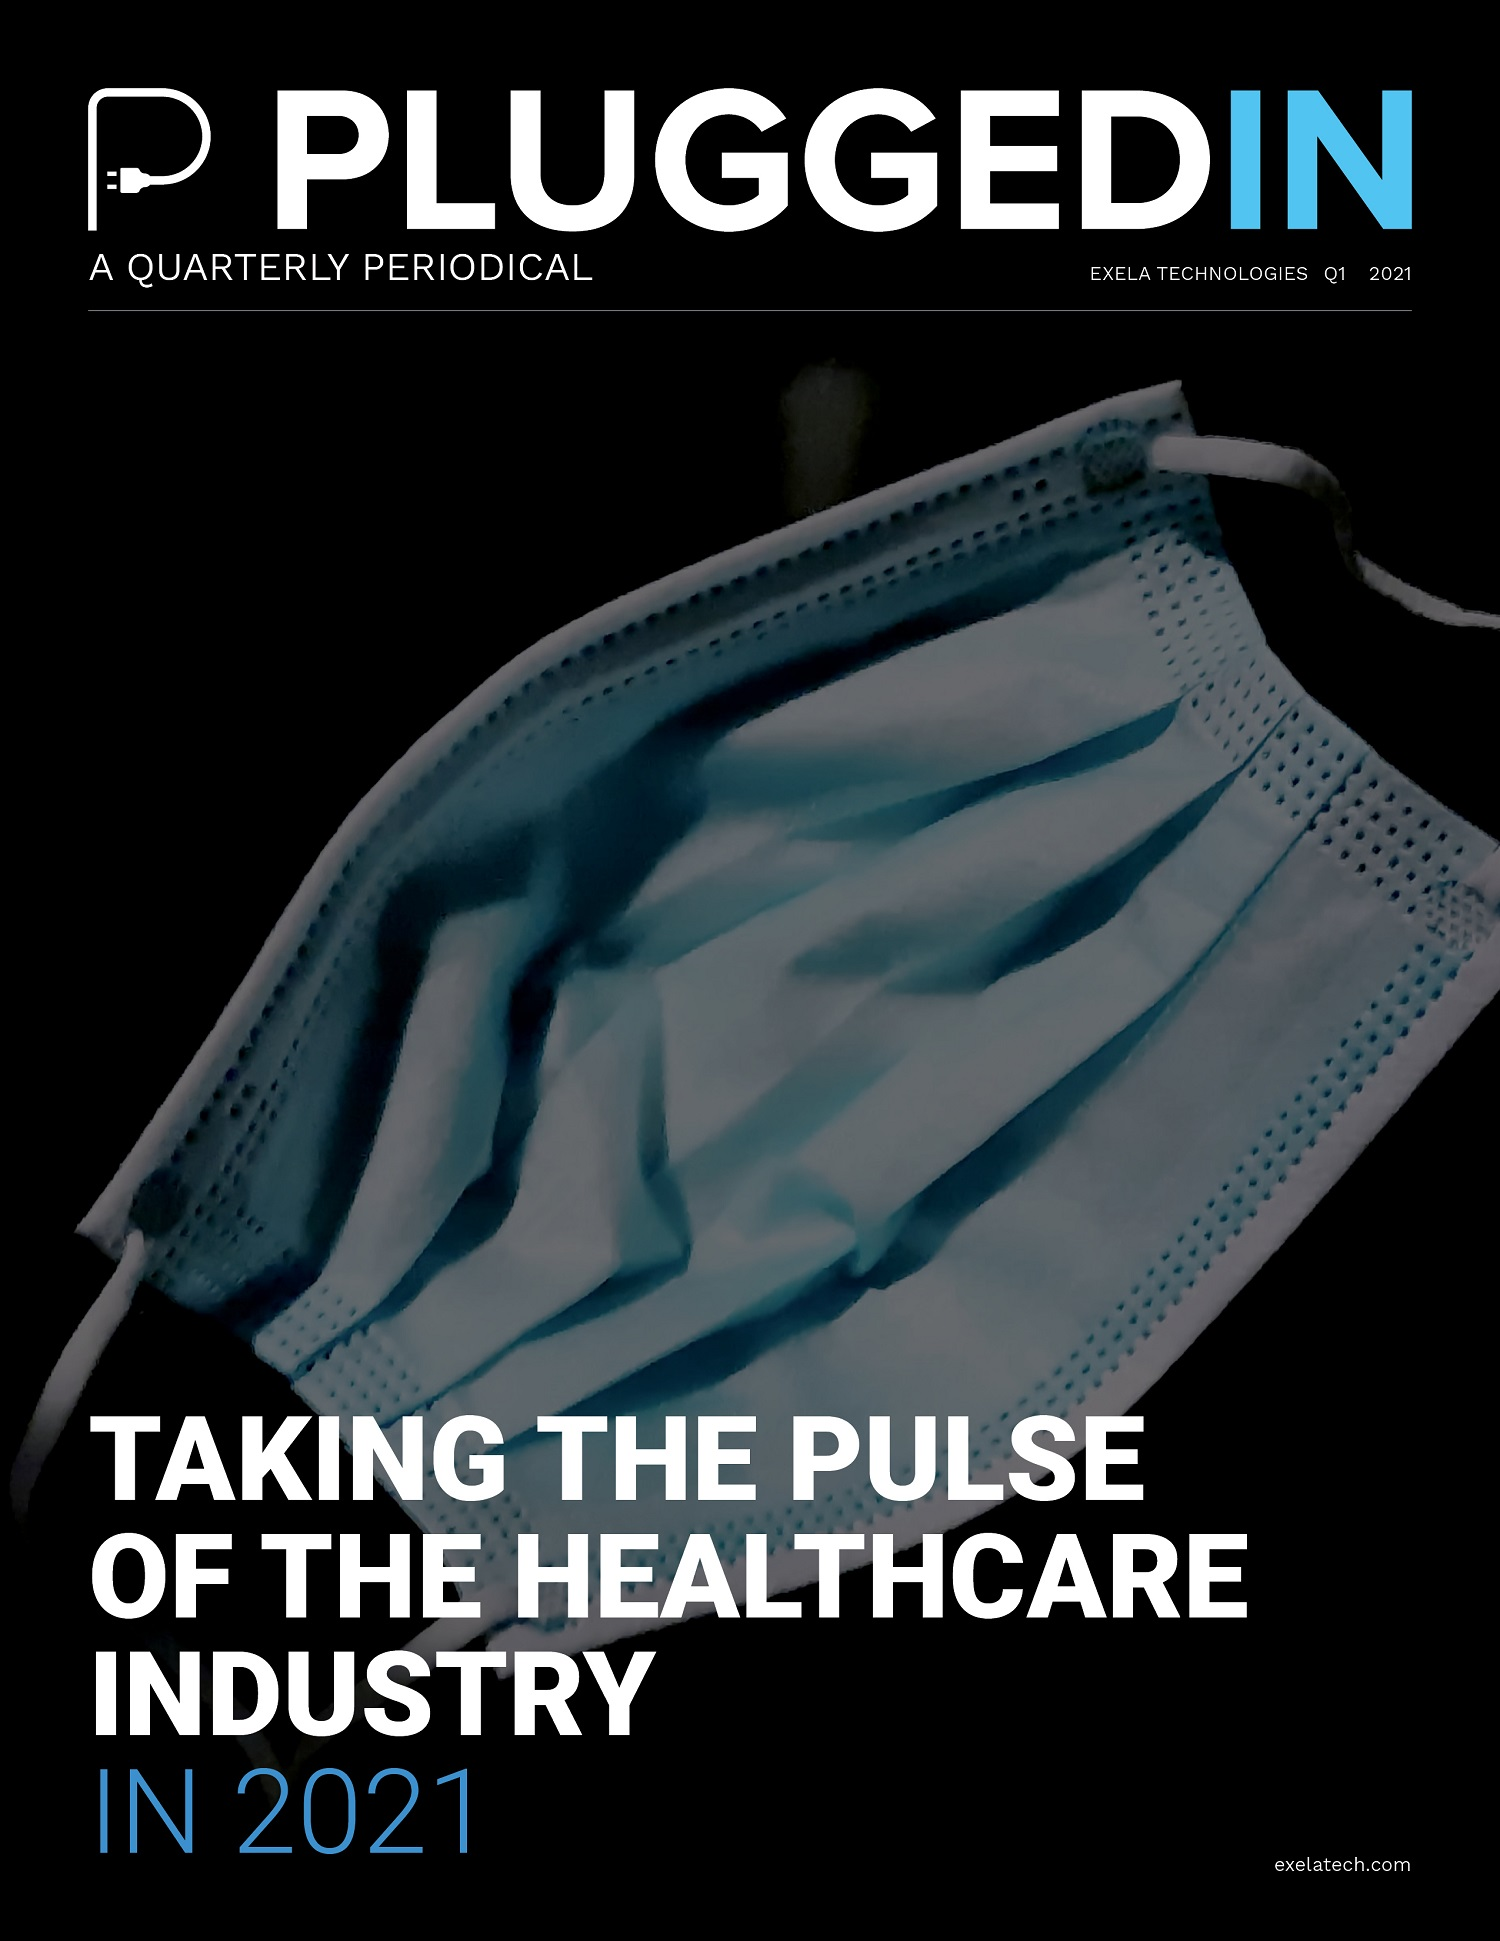 PluggedIN: Taking the Pulse of the Healthcare Industry in 2021